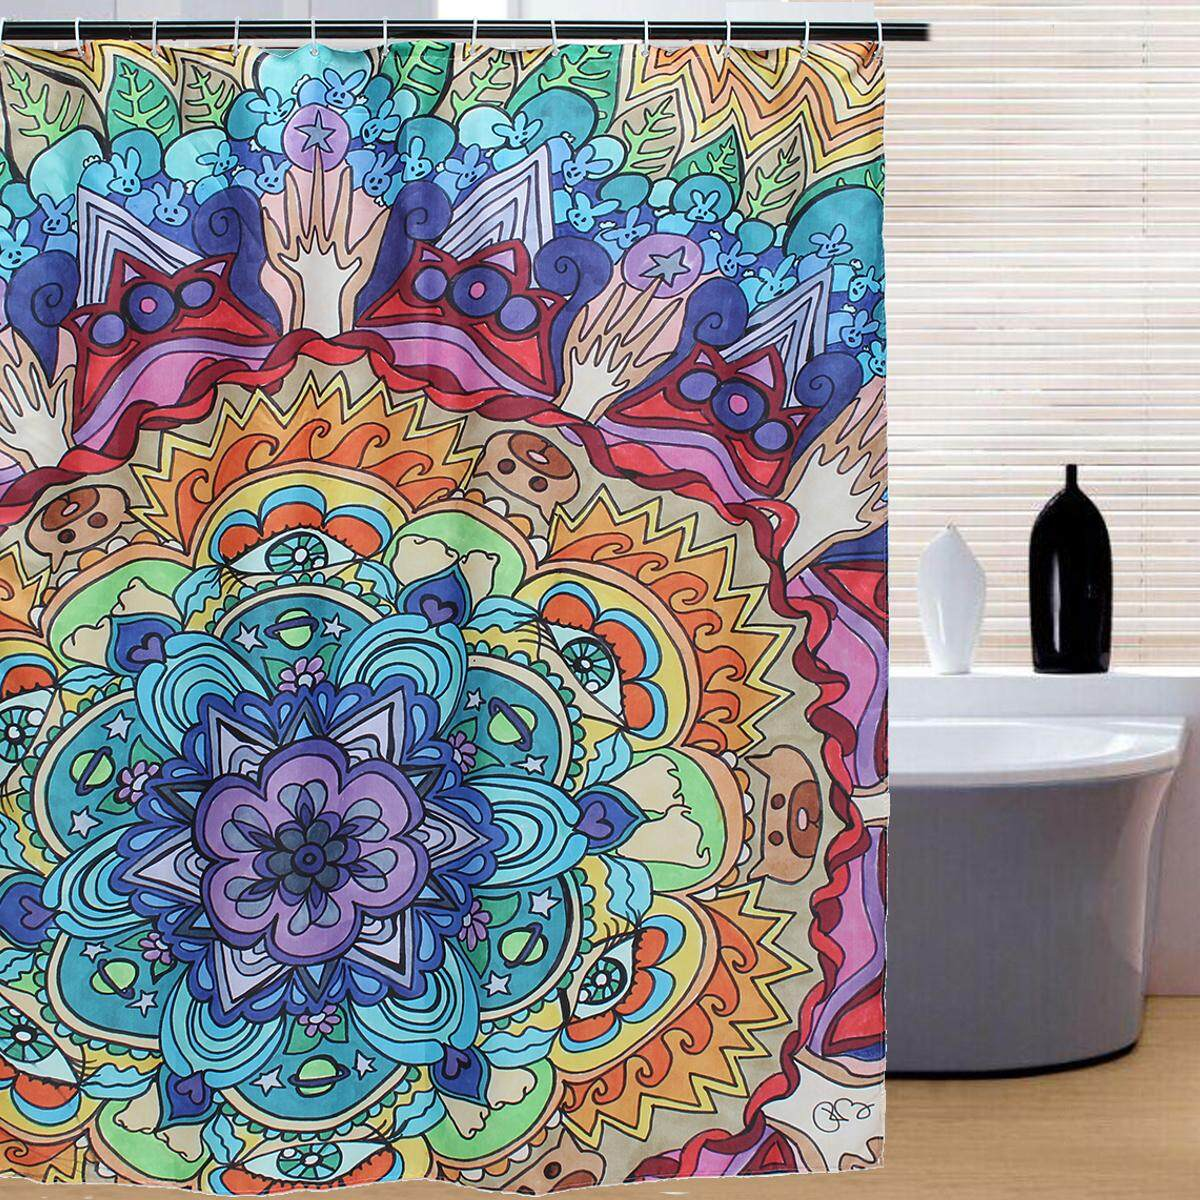 Shower Curtain Waterproof Polyester Fabric Beautiful Mandala Pattern Bathware By Glimmer.